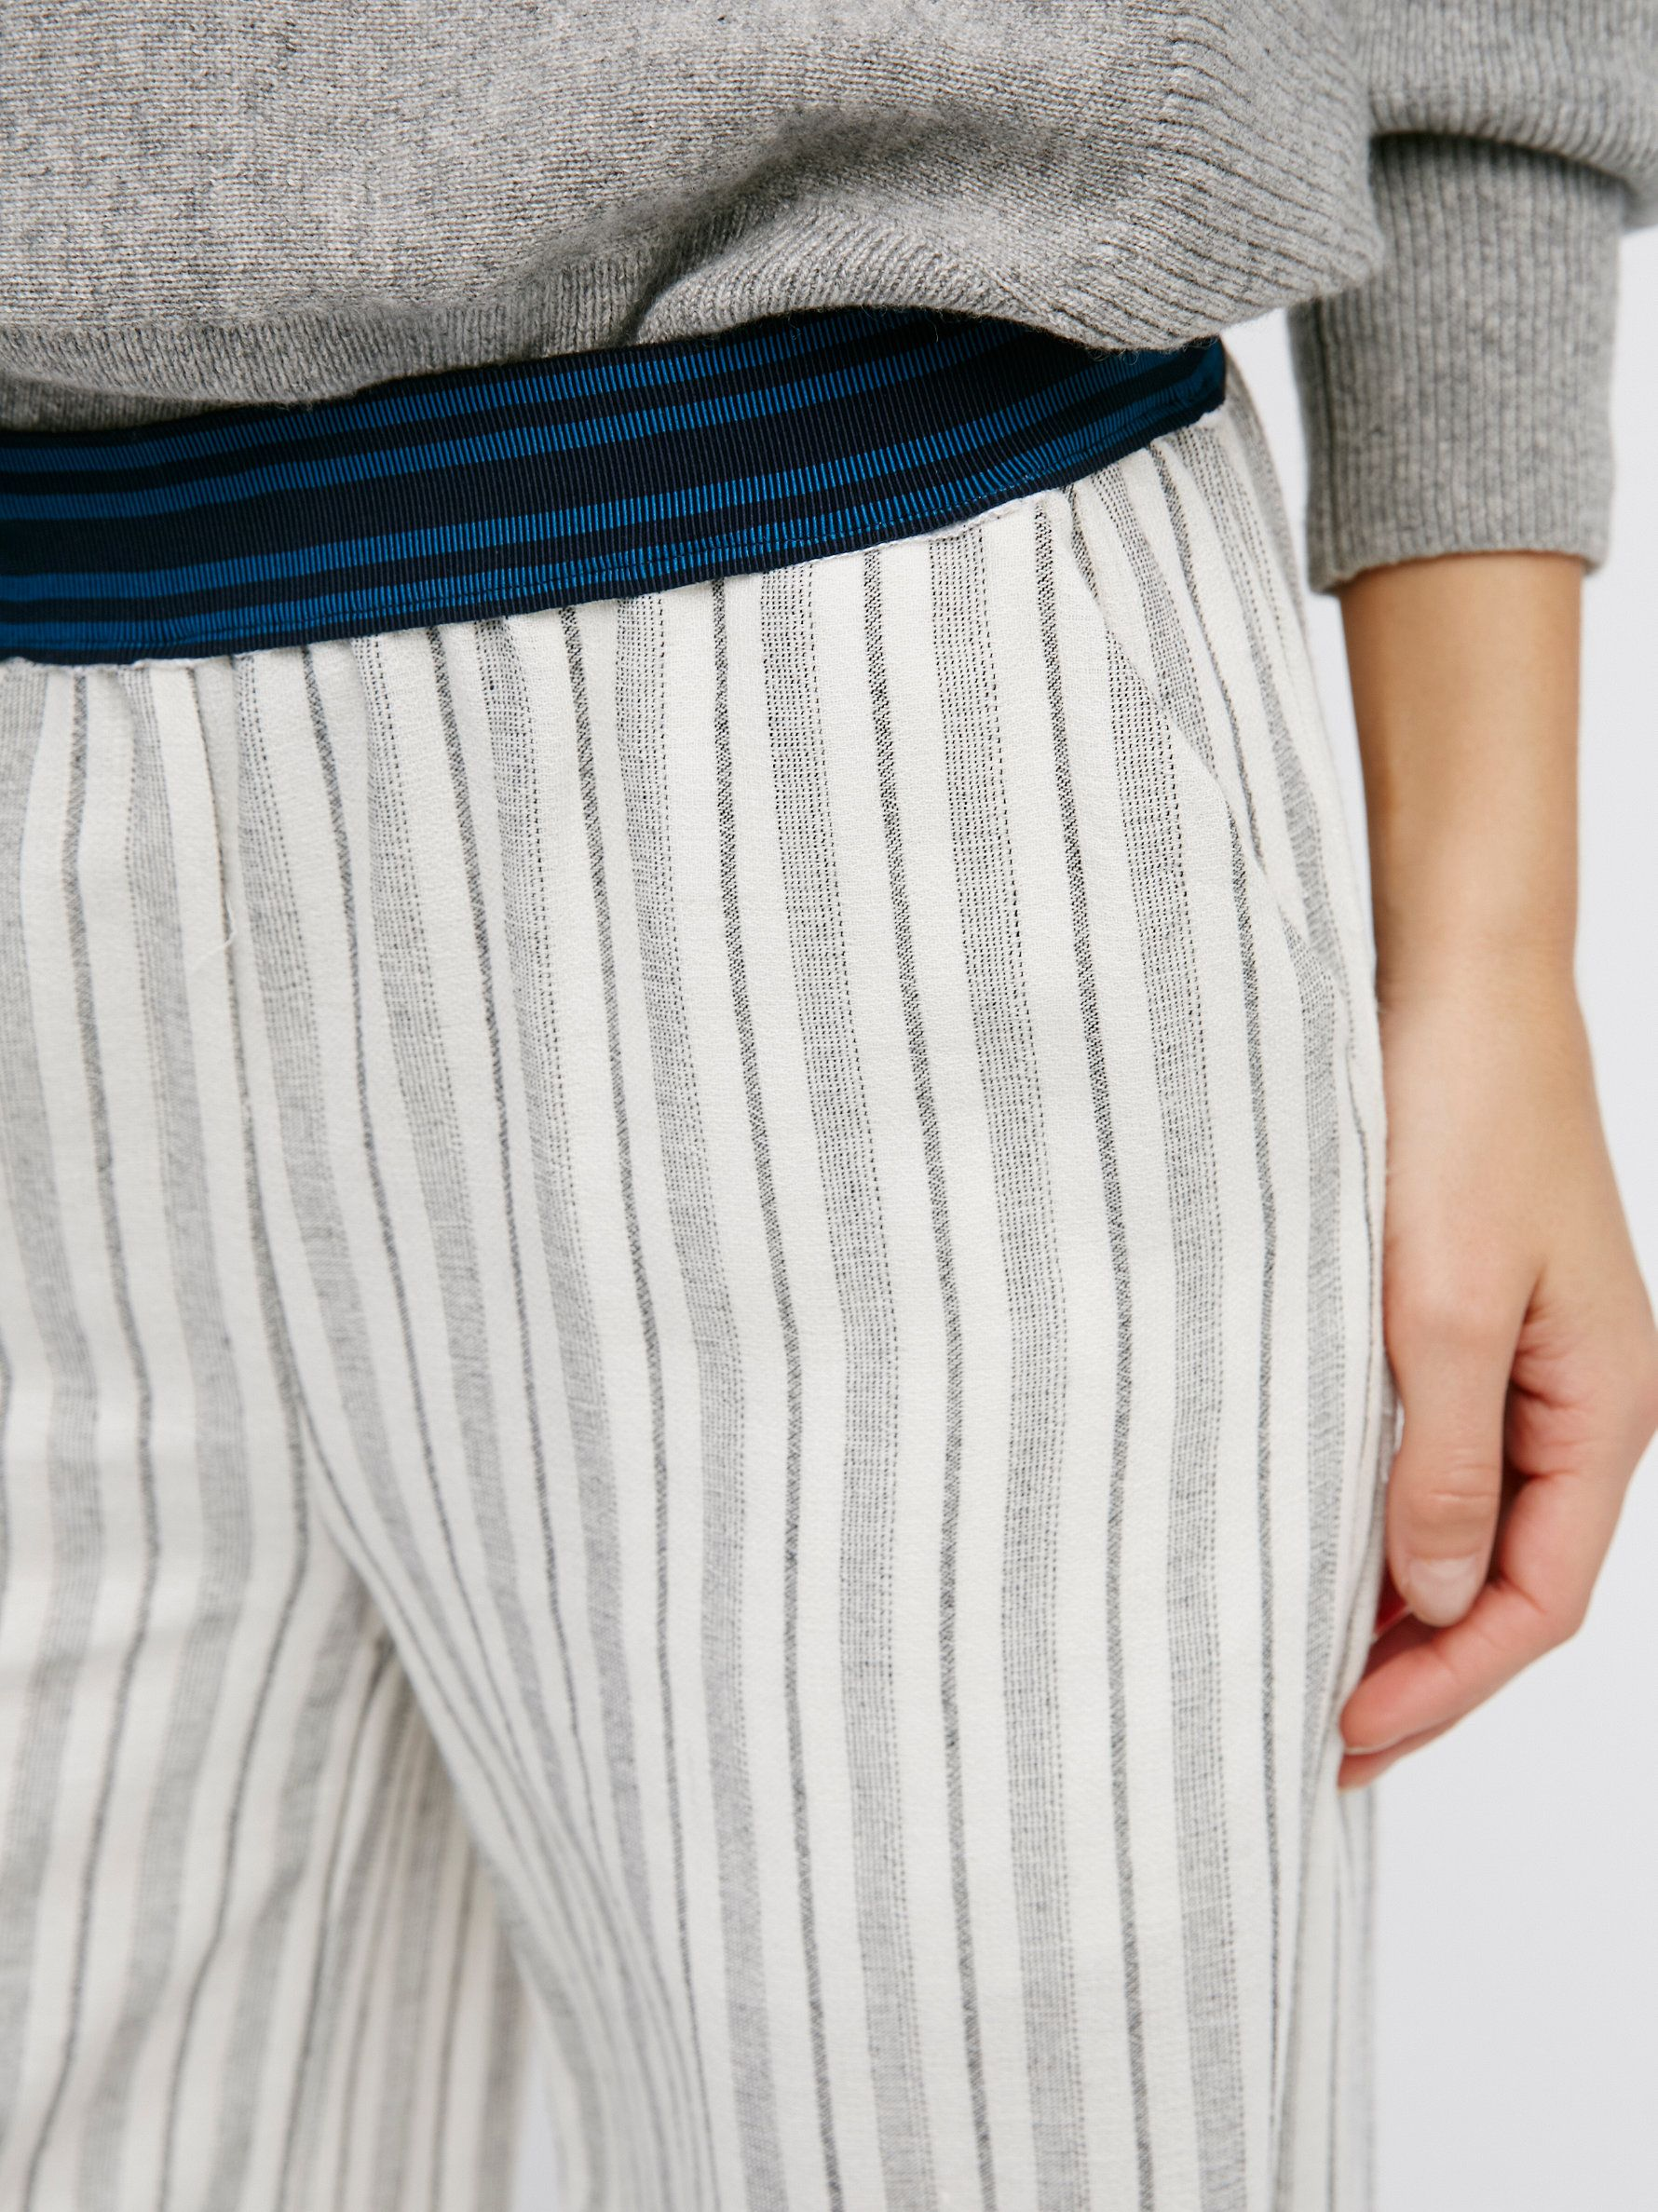 Wide Leg Pull On | In a cotton-blend these lightweight and comfy striped pants are in a wide leg silhouette with hip pockets. Contrast striped elastic waistband for an easy fit.